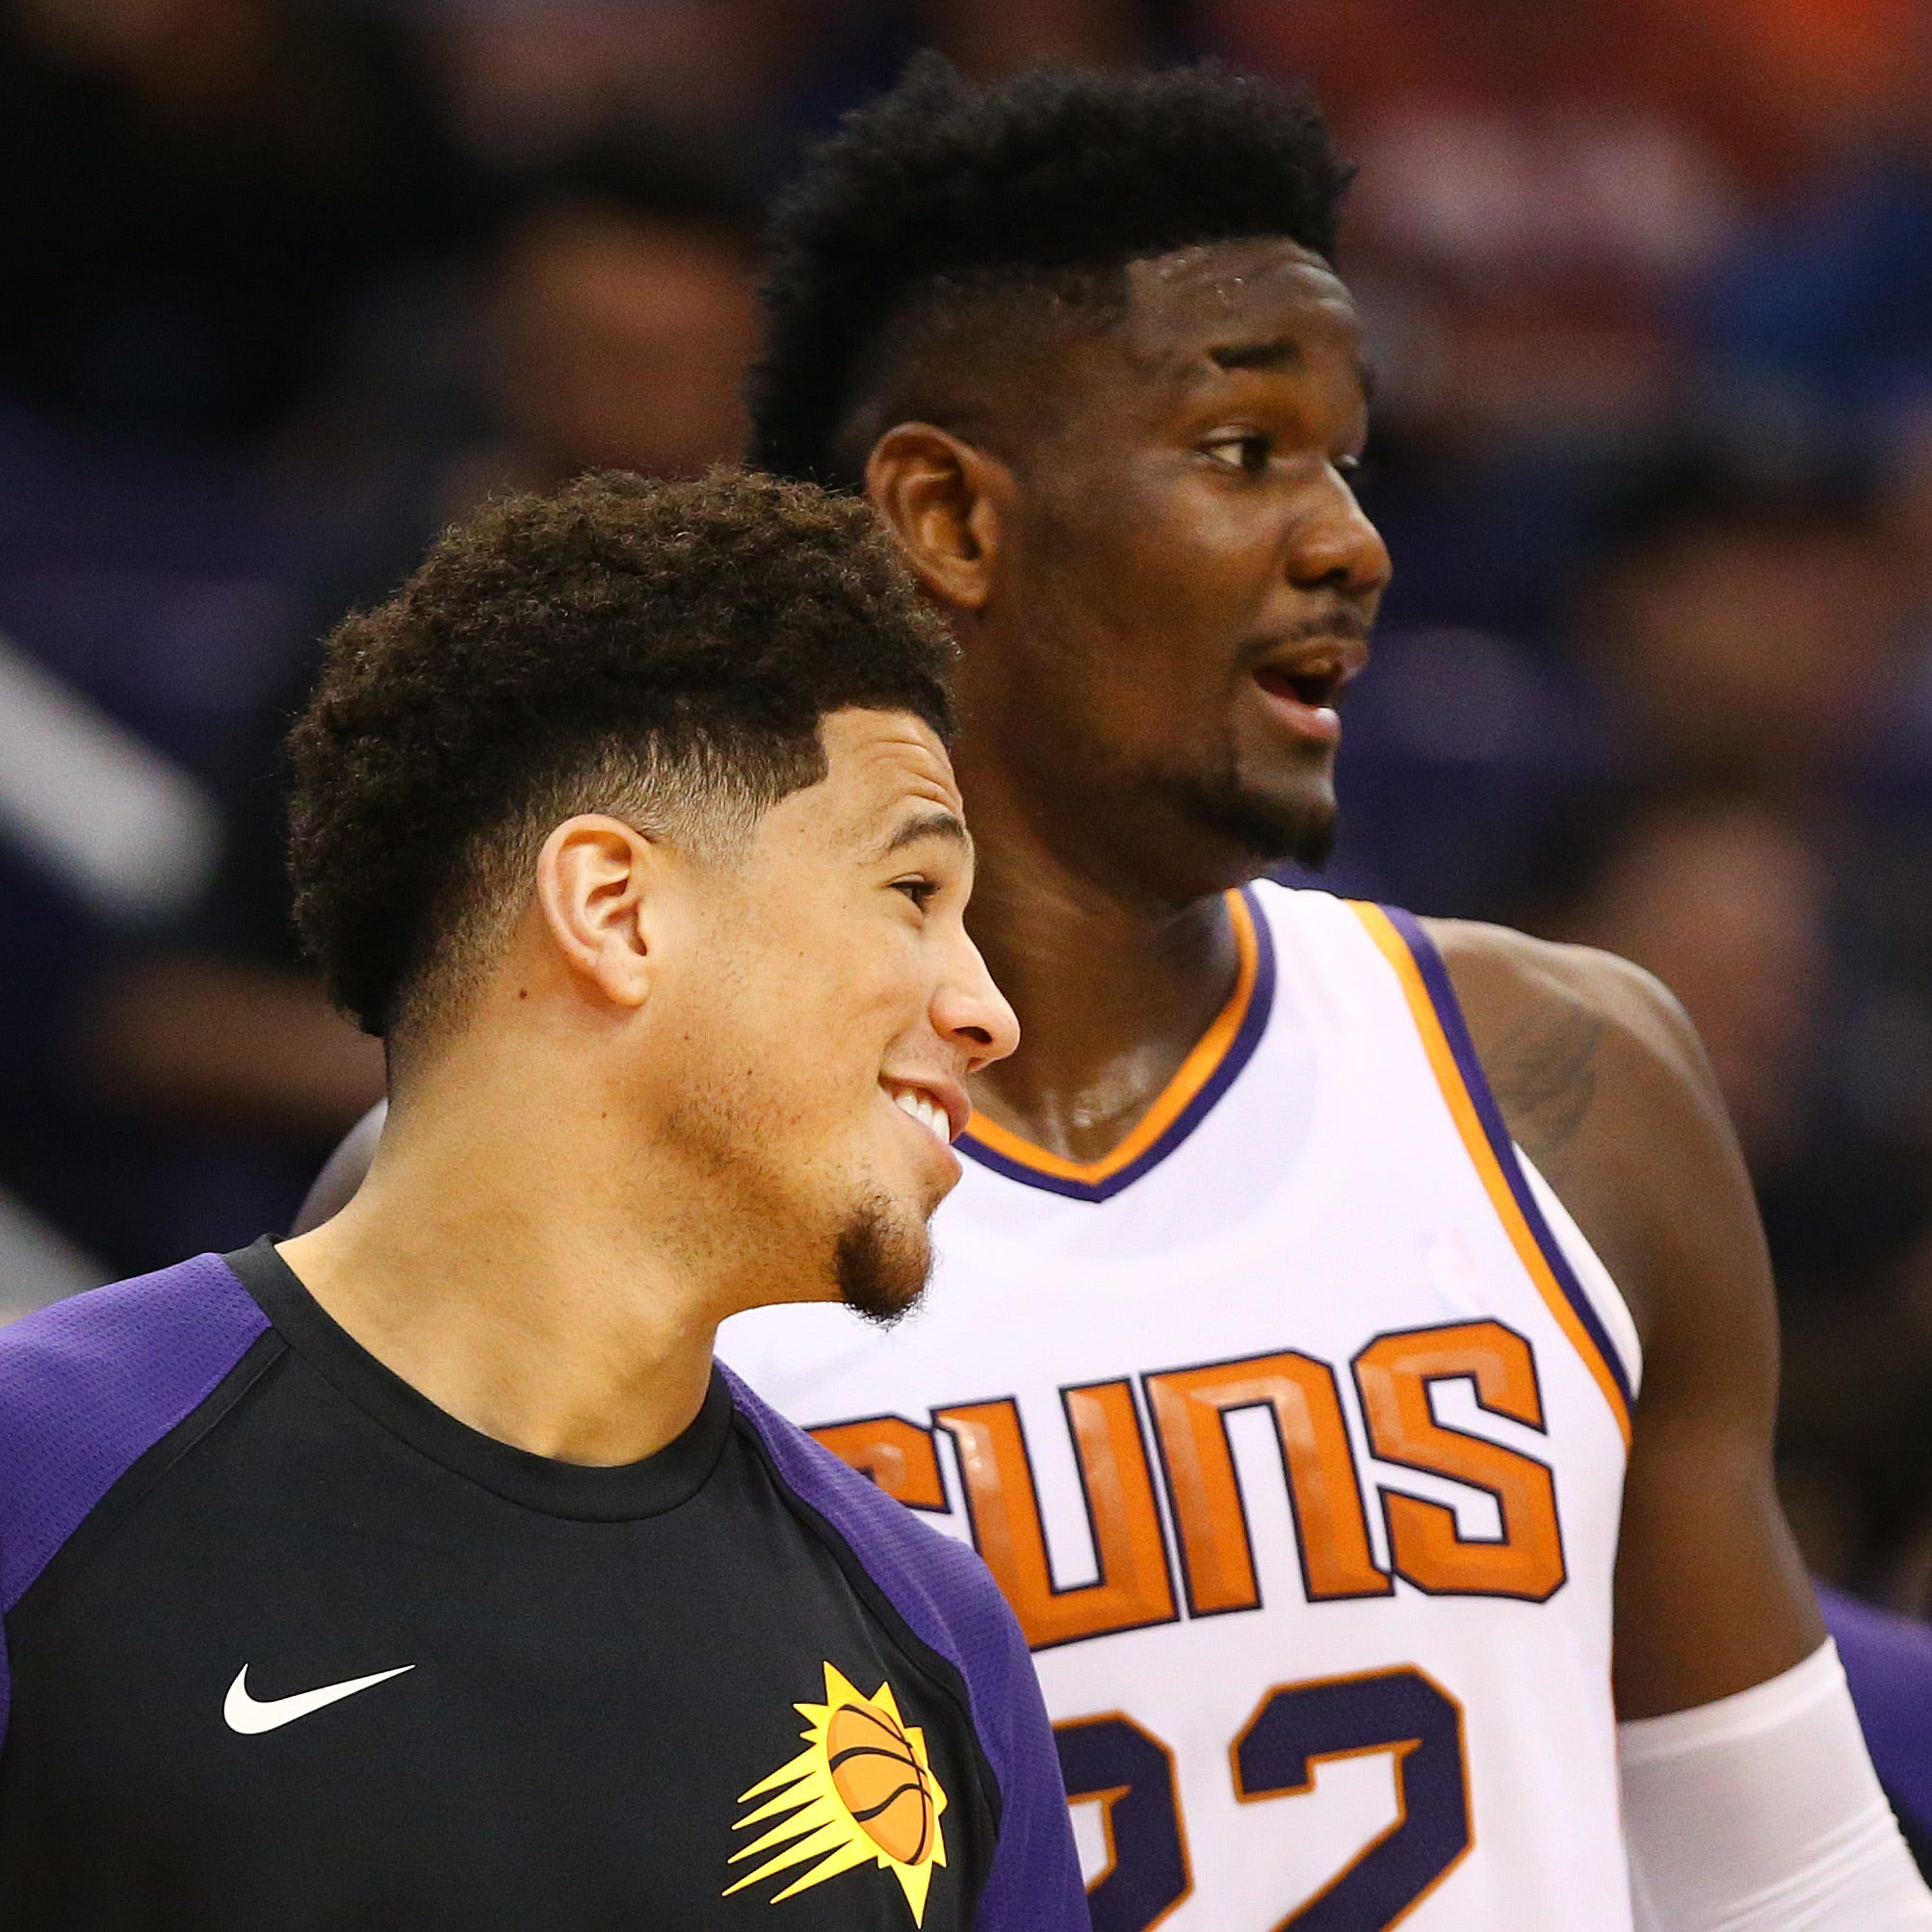 Cleared for contact: Phoenix Suns star Devin Booker taking final steps to returning from injured right hand